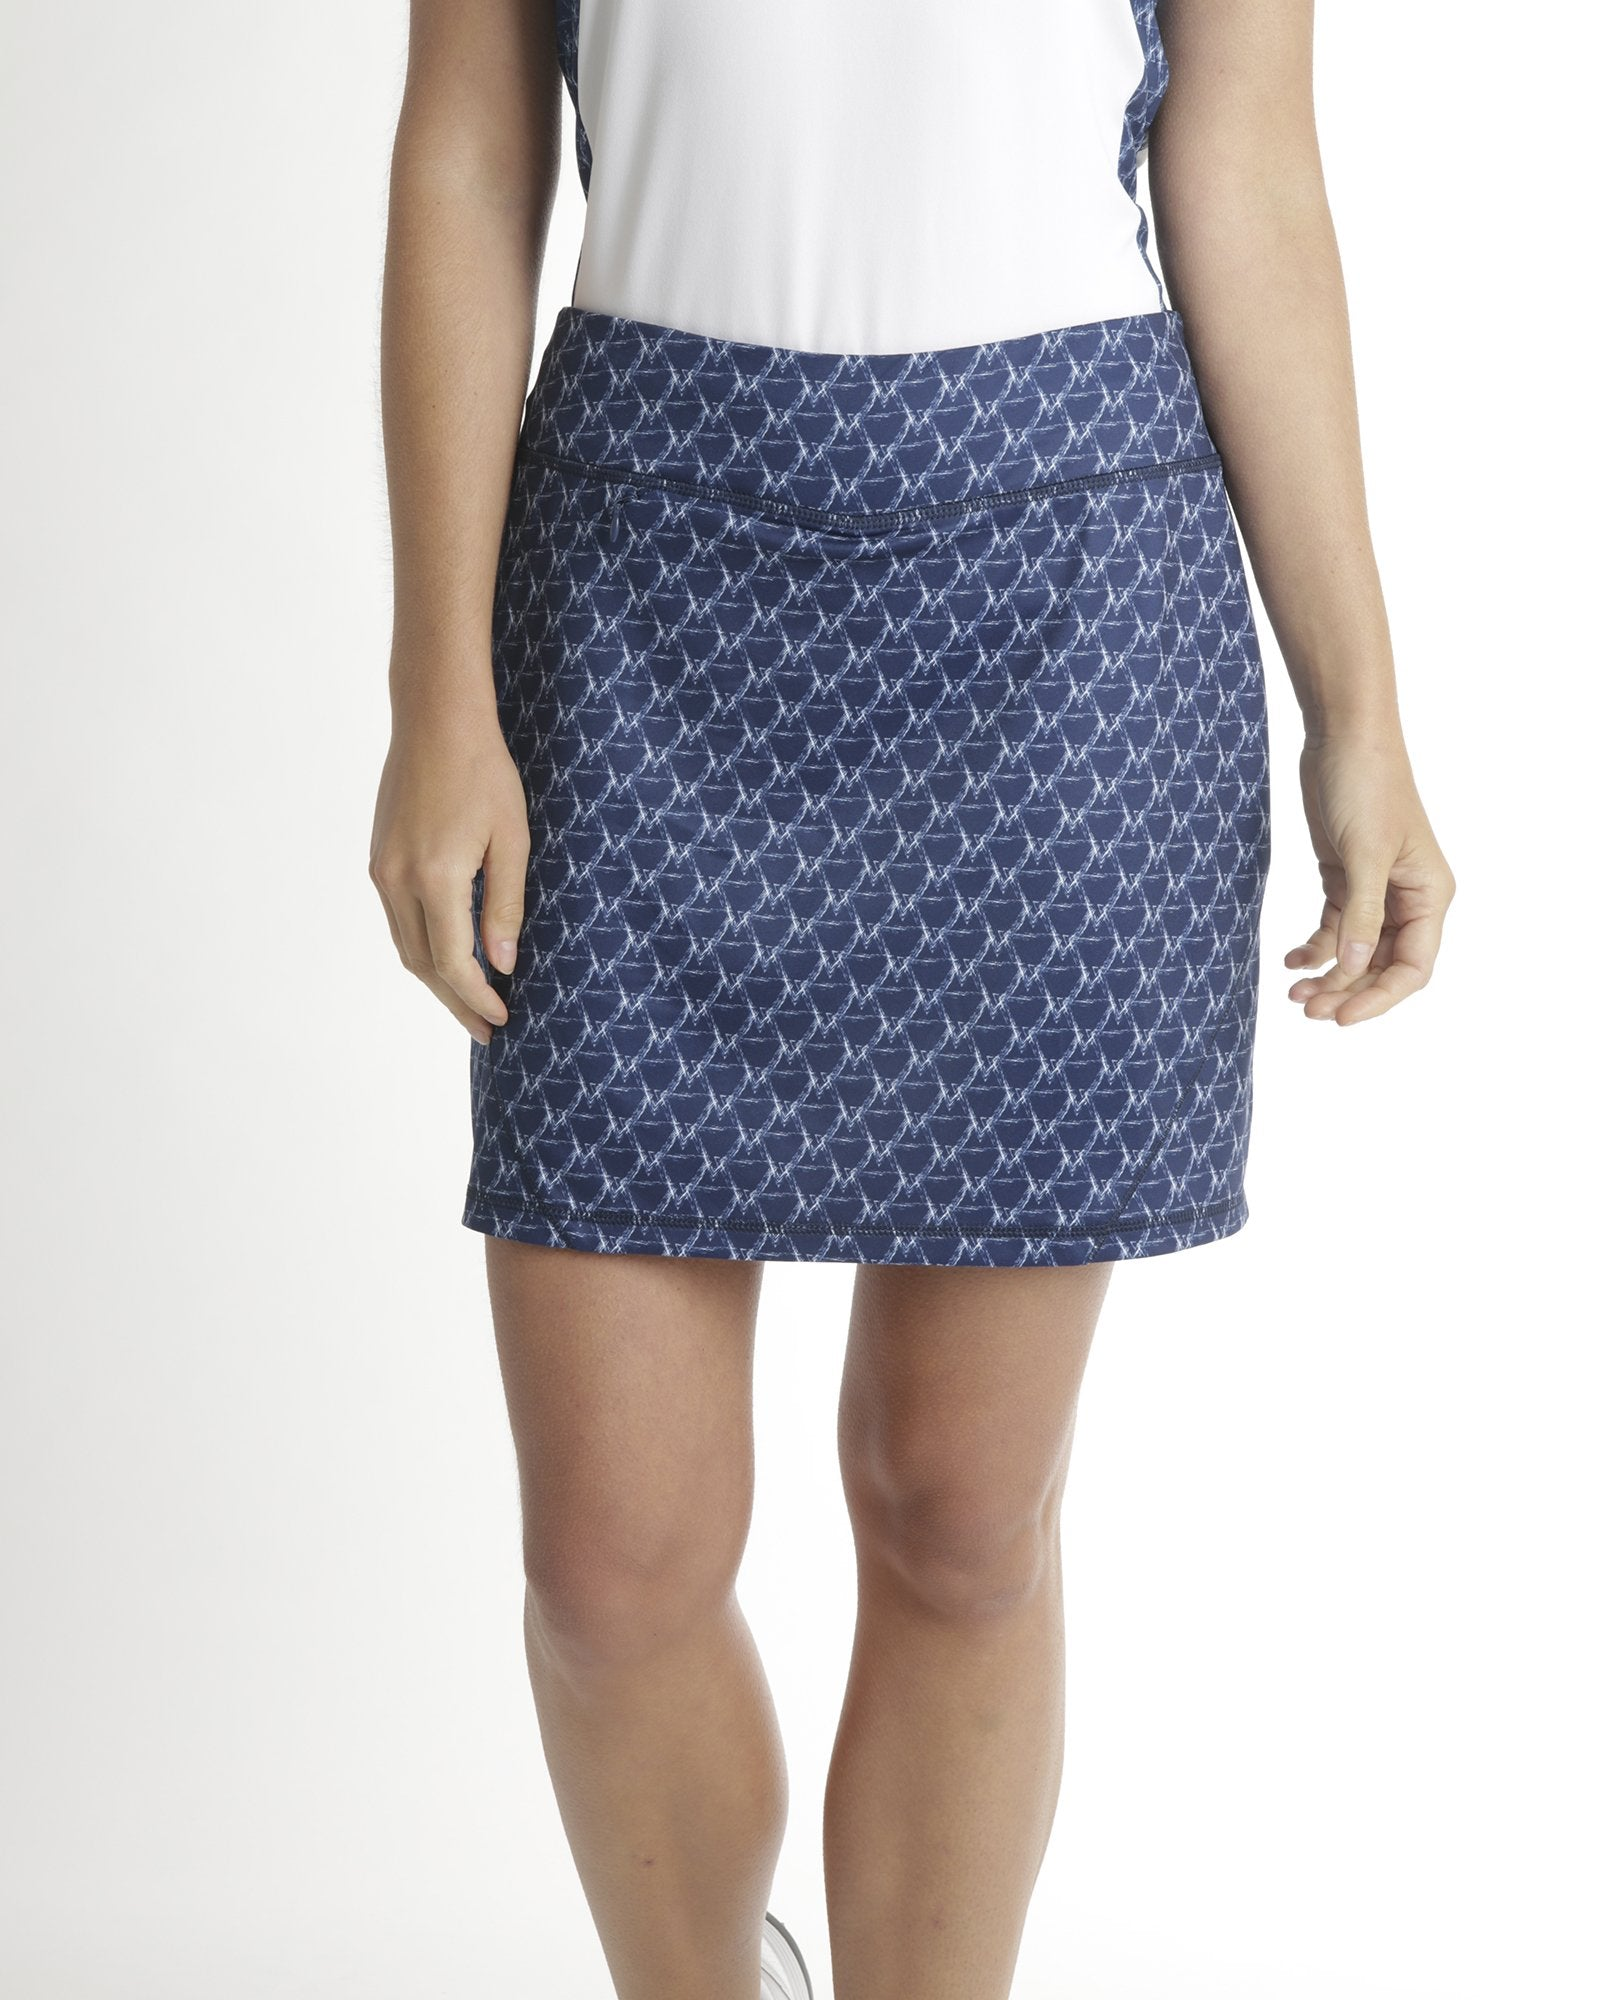 "RIPPLE WOMEN'S SKORT (15"" INSEAM)"